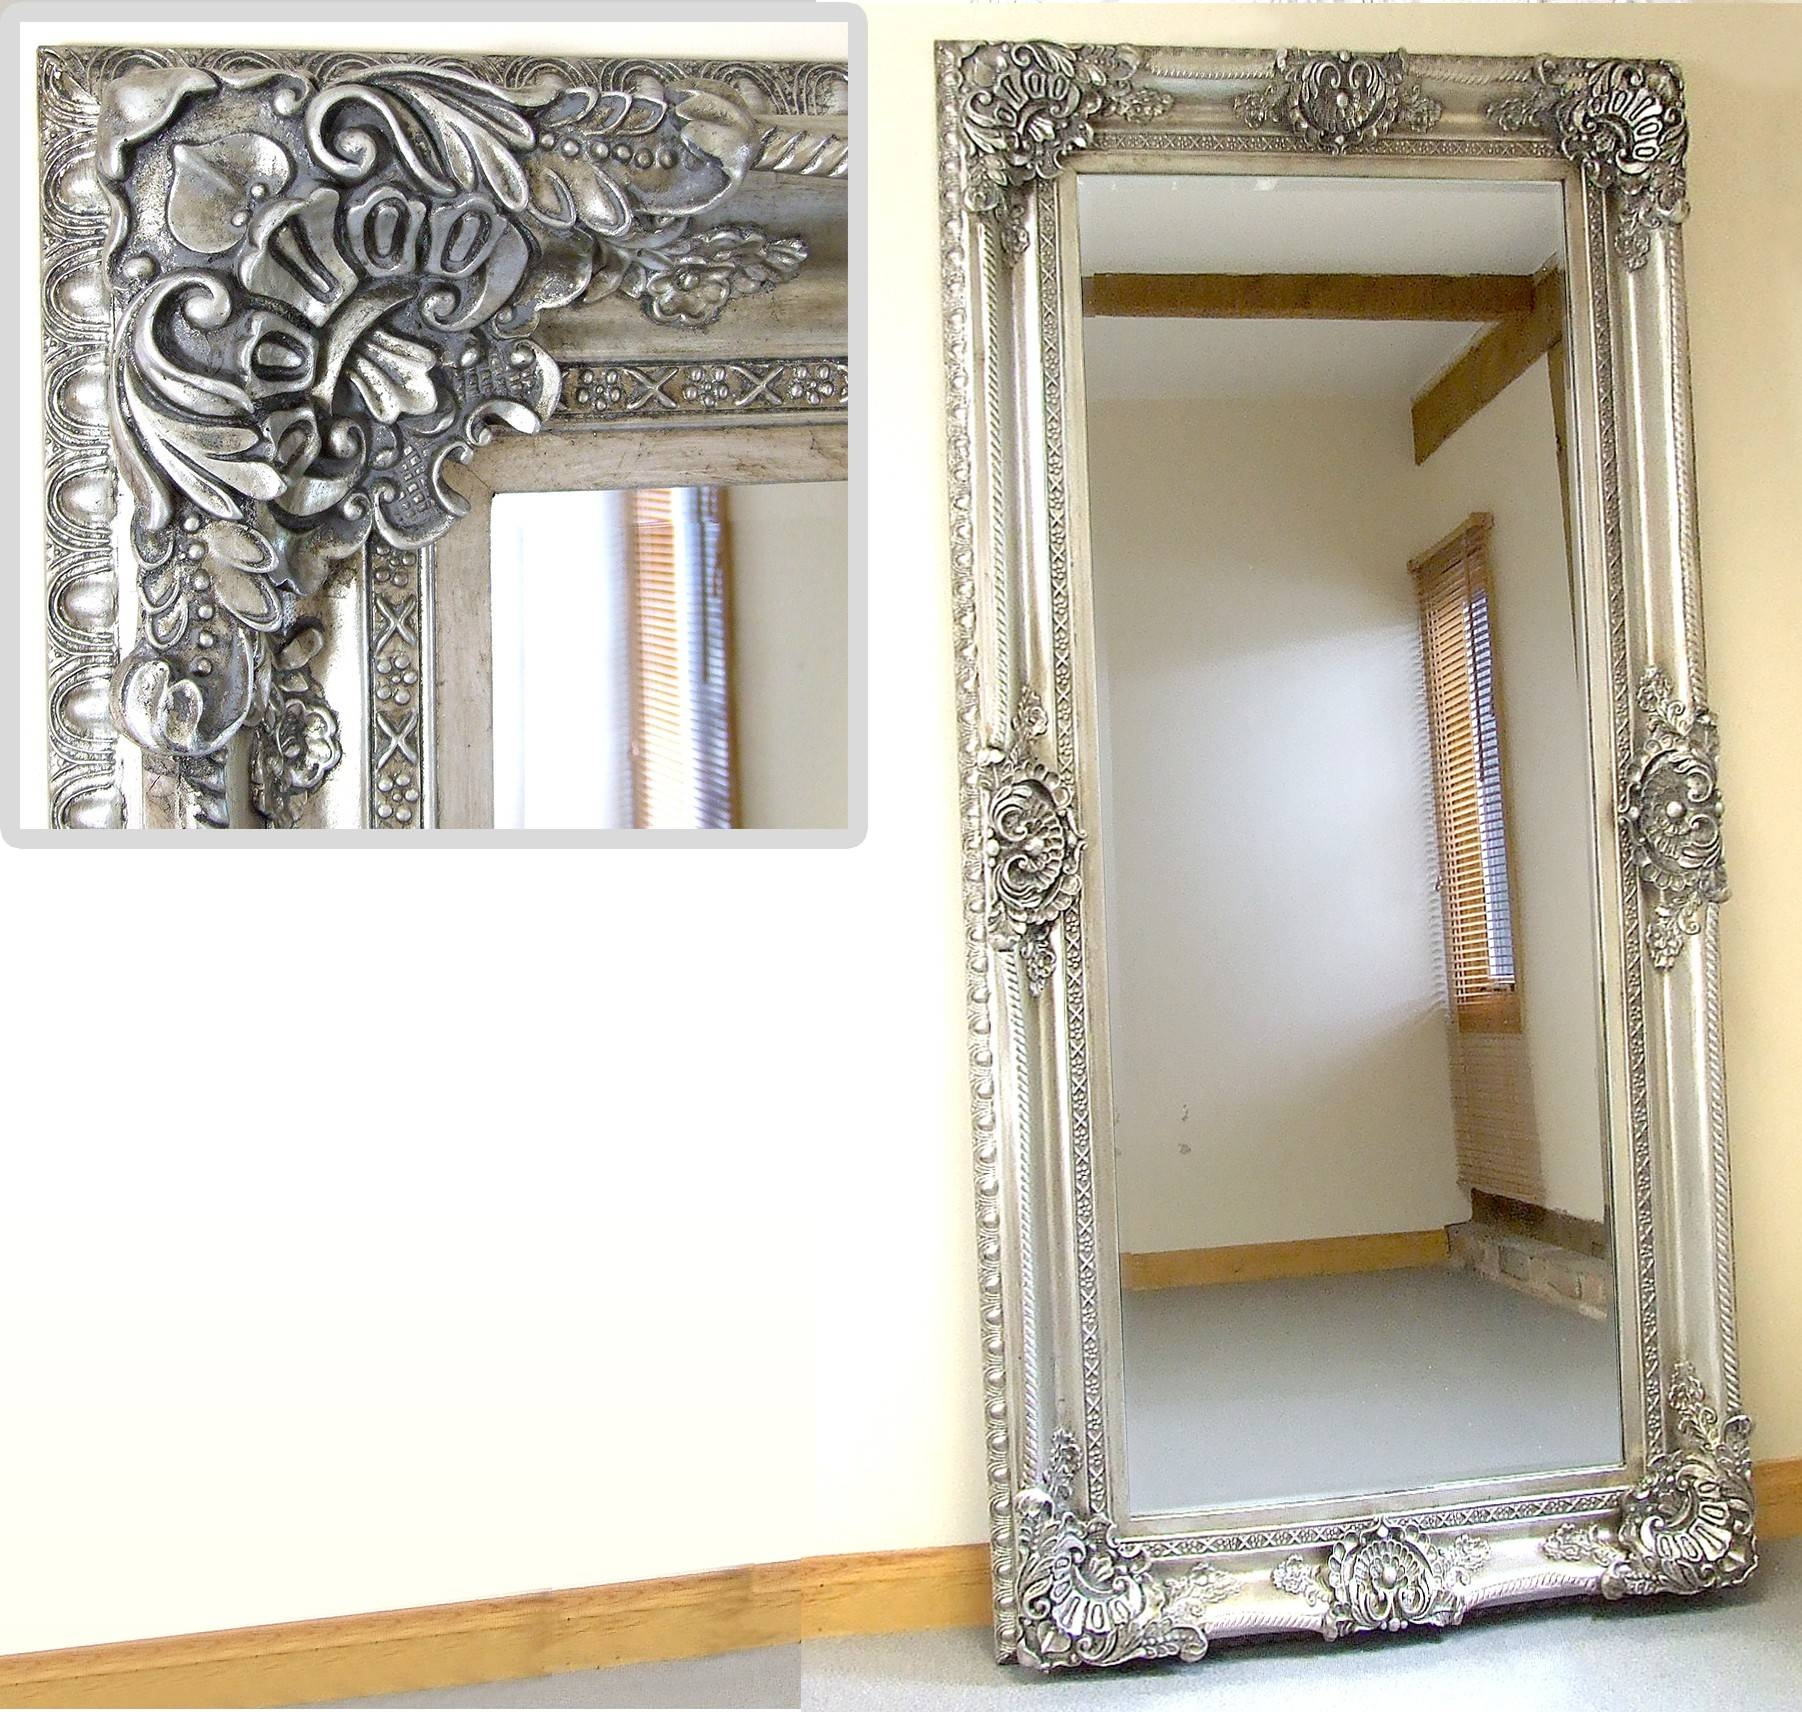 Full Length Silver Mirror 40 Unique Decoration And Ornate Full within Large Ornate Silver Mirrors (Image 8 of 25)